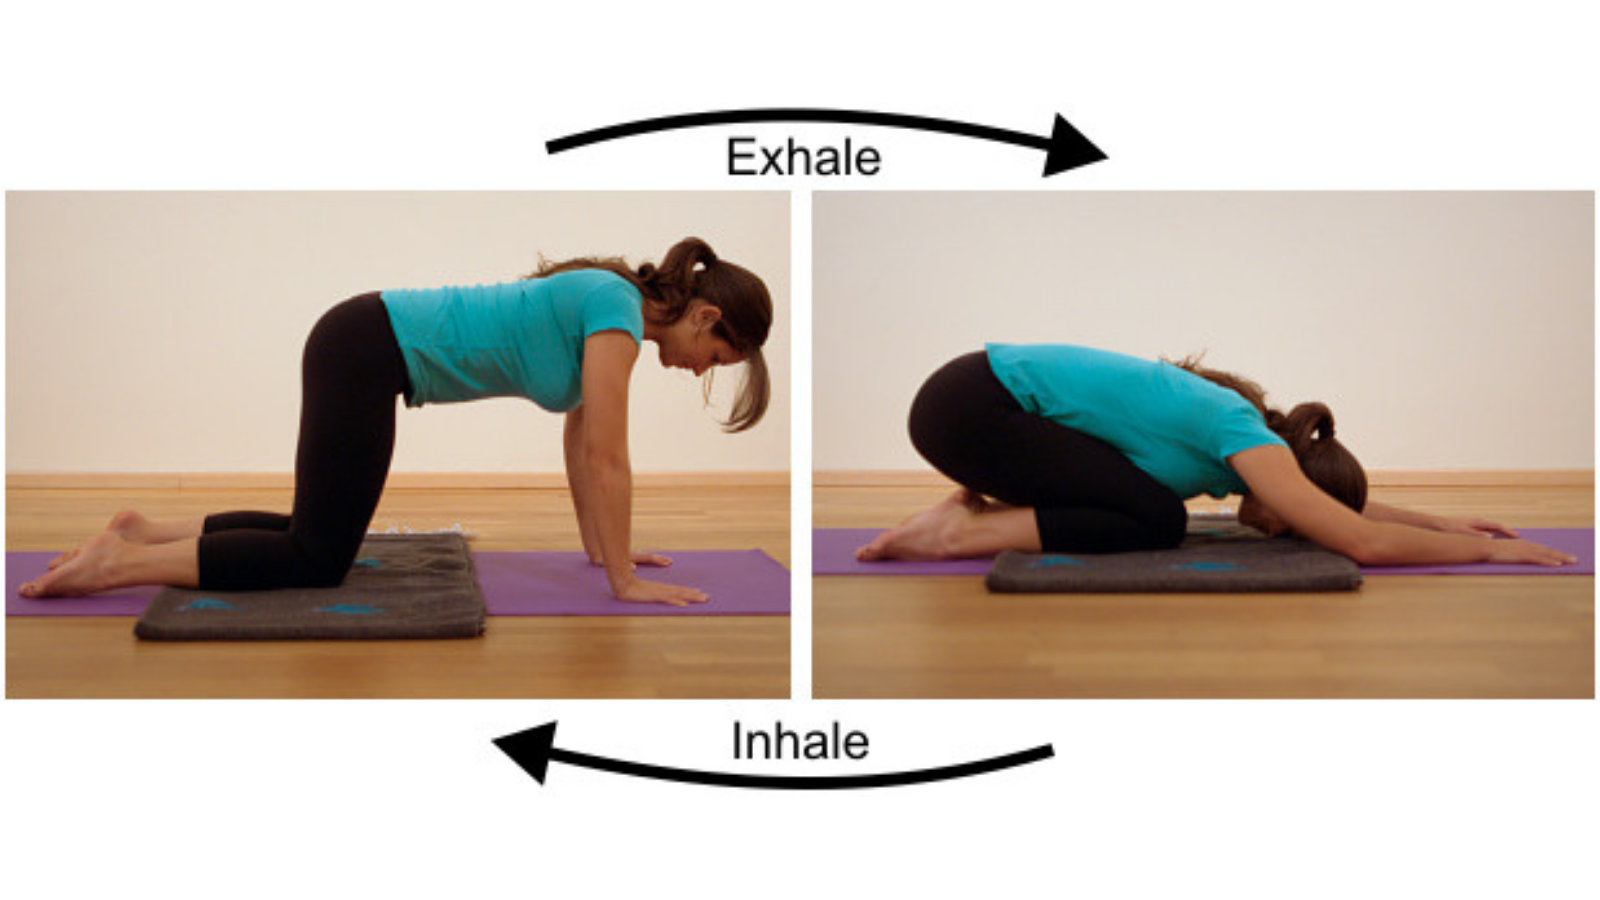 w to experience the benefits of Cat yoga Pose (Chakravakasana) for the spine and back